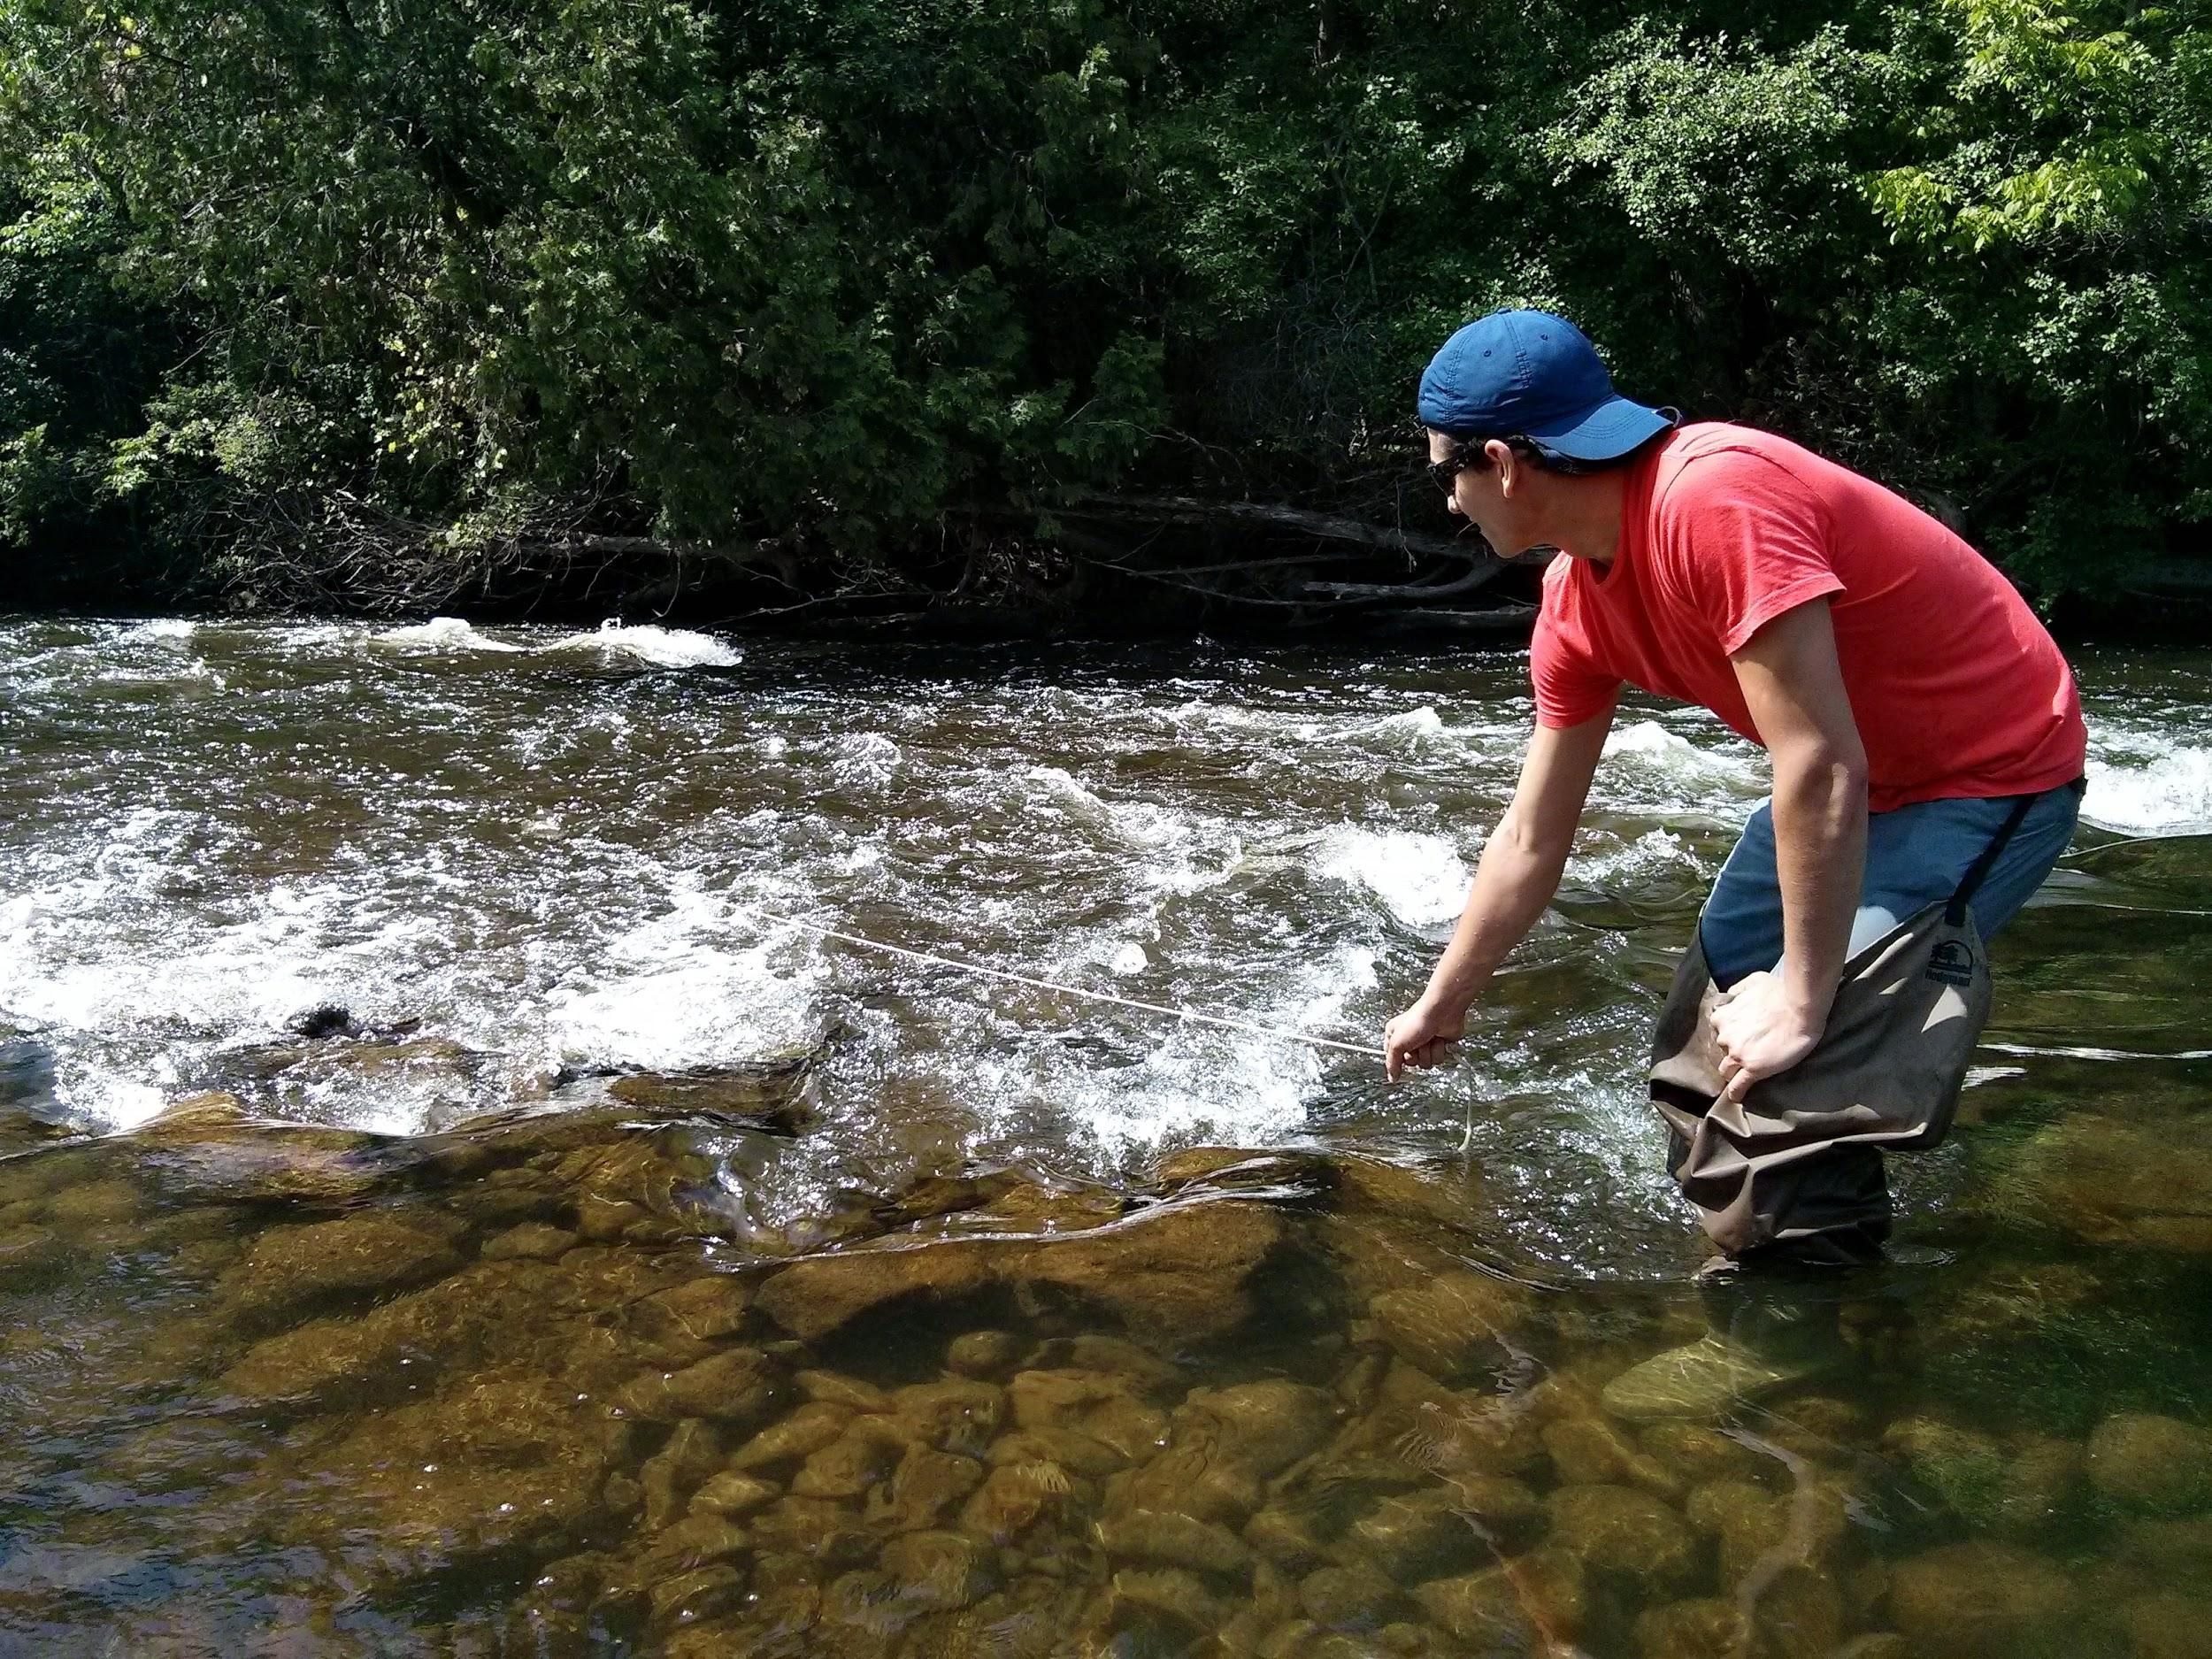 Acquiring a plankton sample with the plankton tow net in shallow flowing water at the Speed River collecting site - Crane Park, Guelph, Ontario.